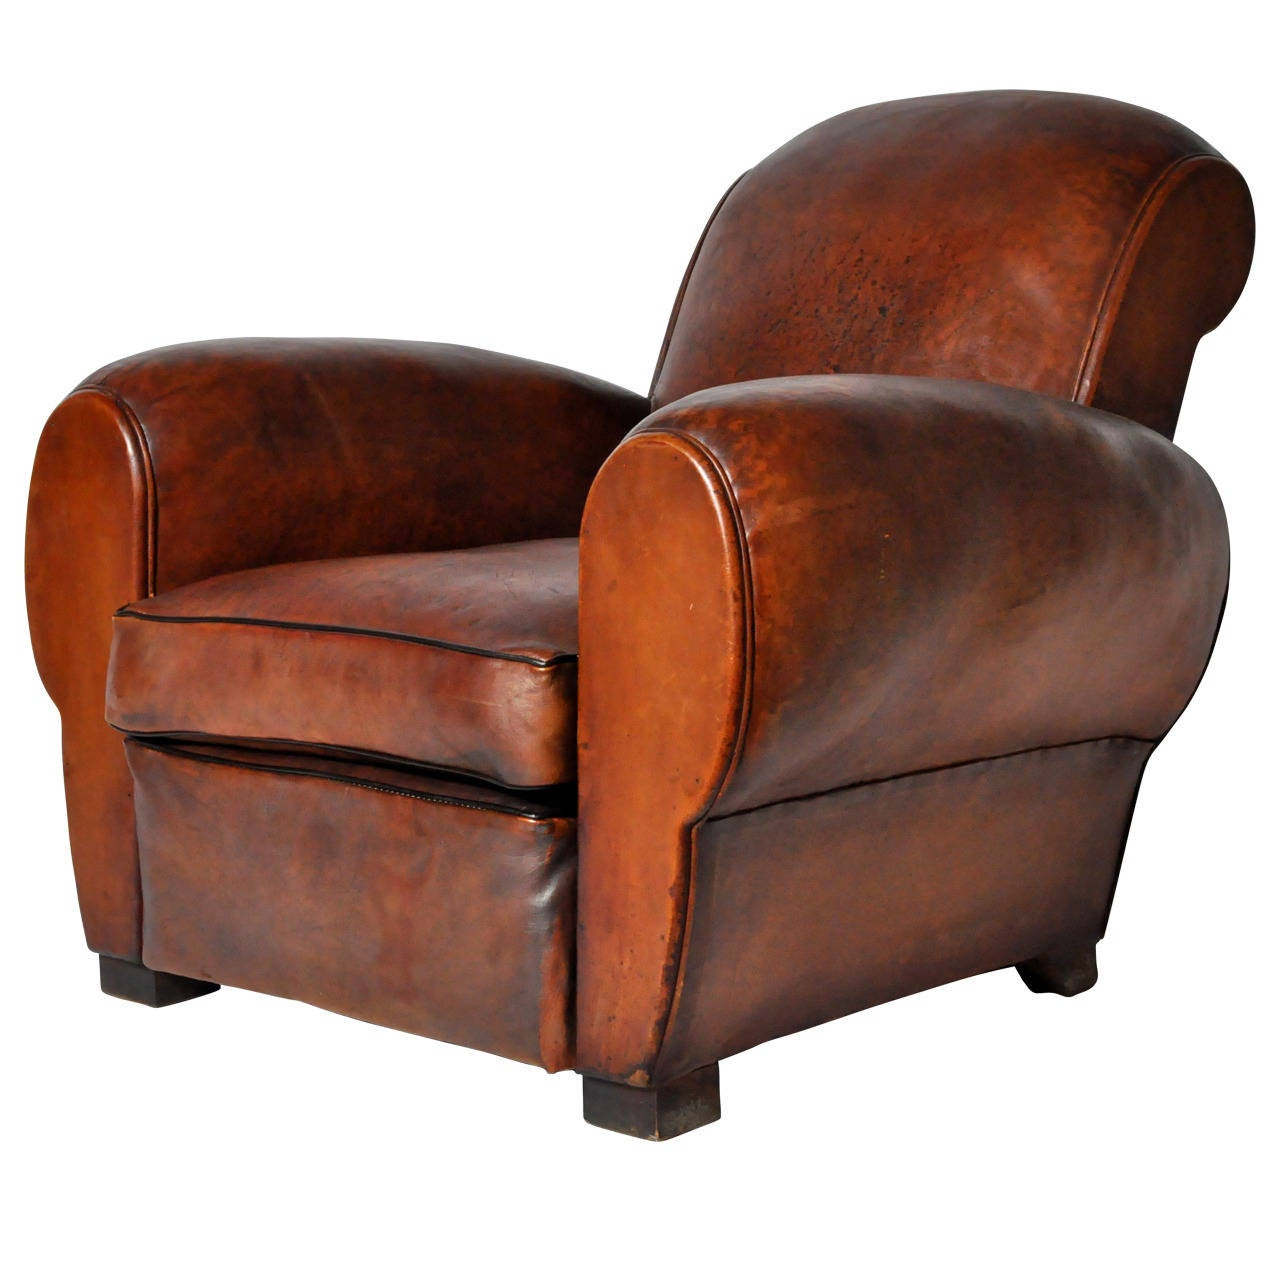 Vintage Stuhl Leder Vintage French Leather Club Chair At 1stdibs